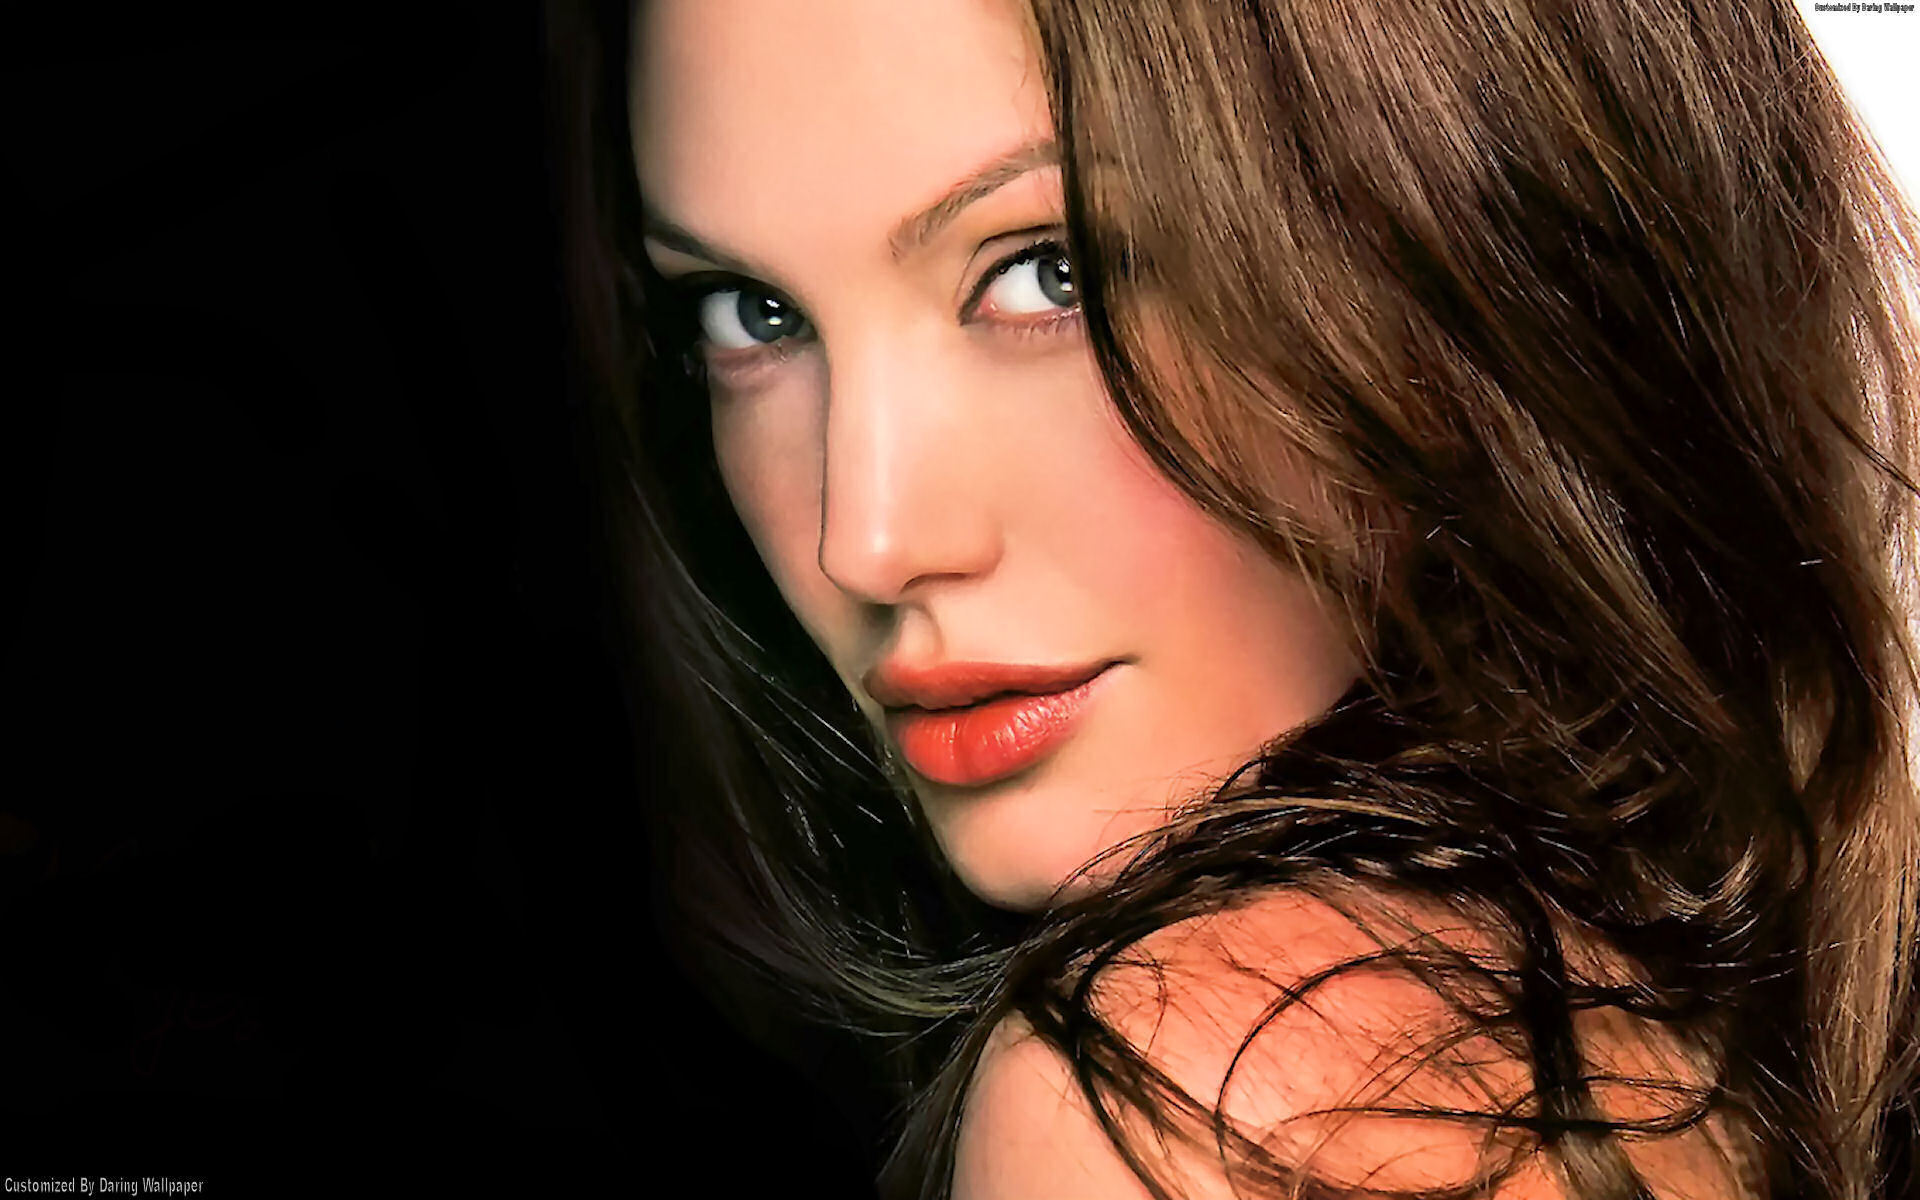 Angelina Jolie Wallpap... Angelina Jolie